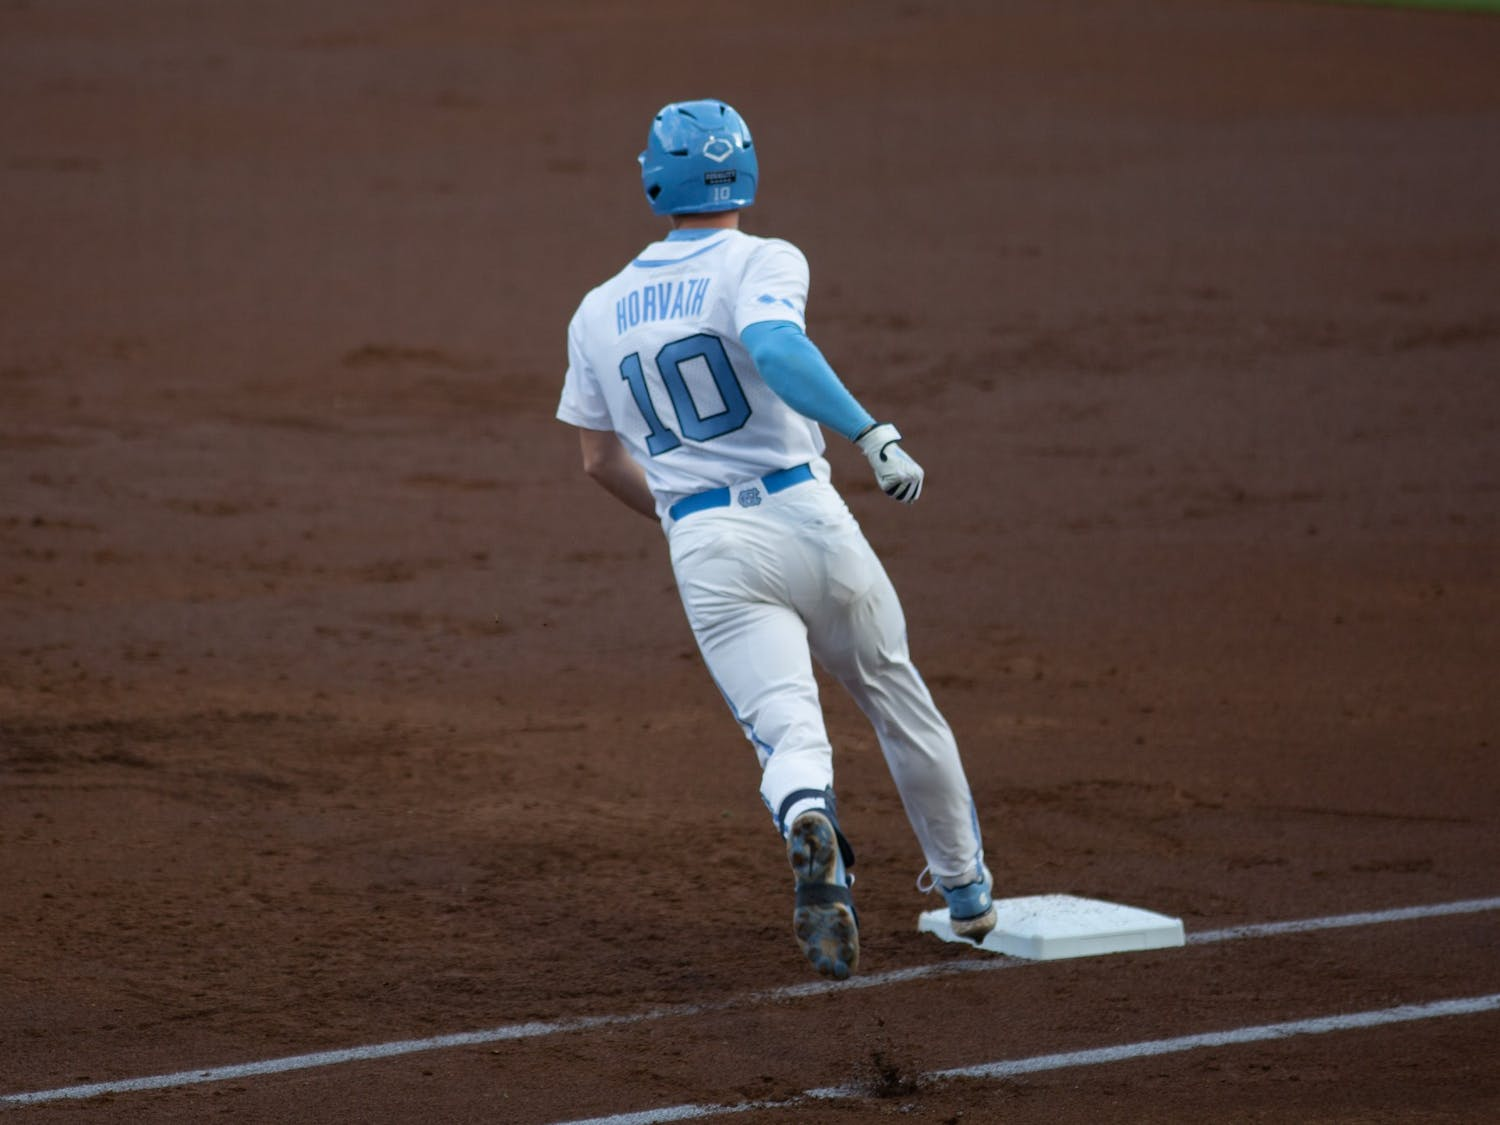 First-year infielder Mac Horvath (10) rounds first base after a home run in a game against Louisville on Friday, May 14, 2021. The Tar Heels beat the Cardinals 5-1.